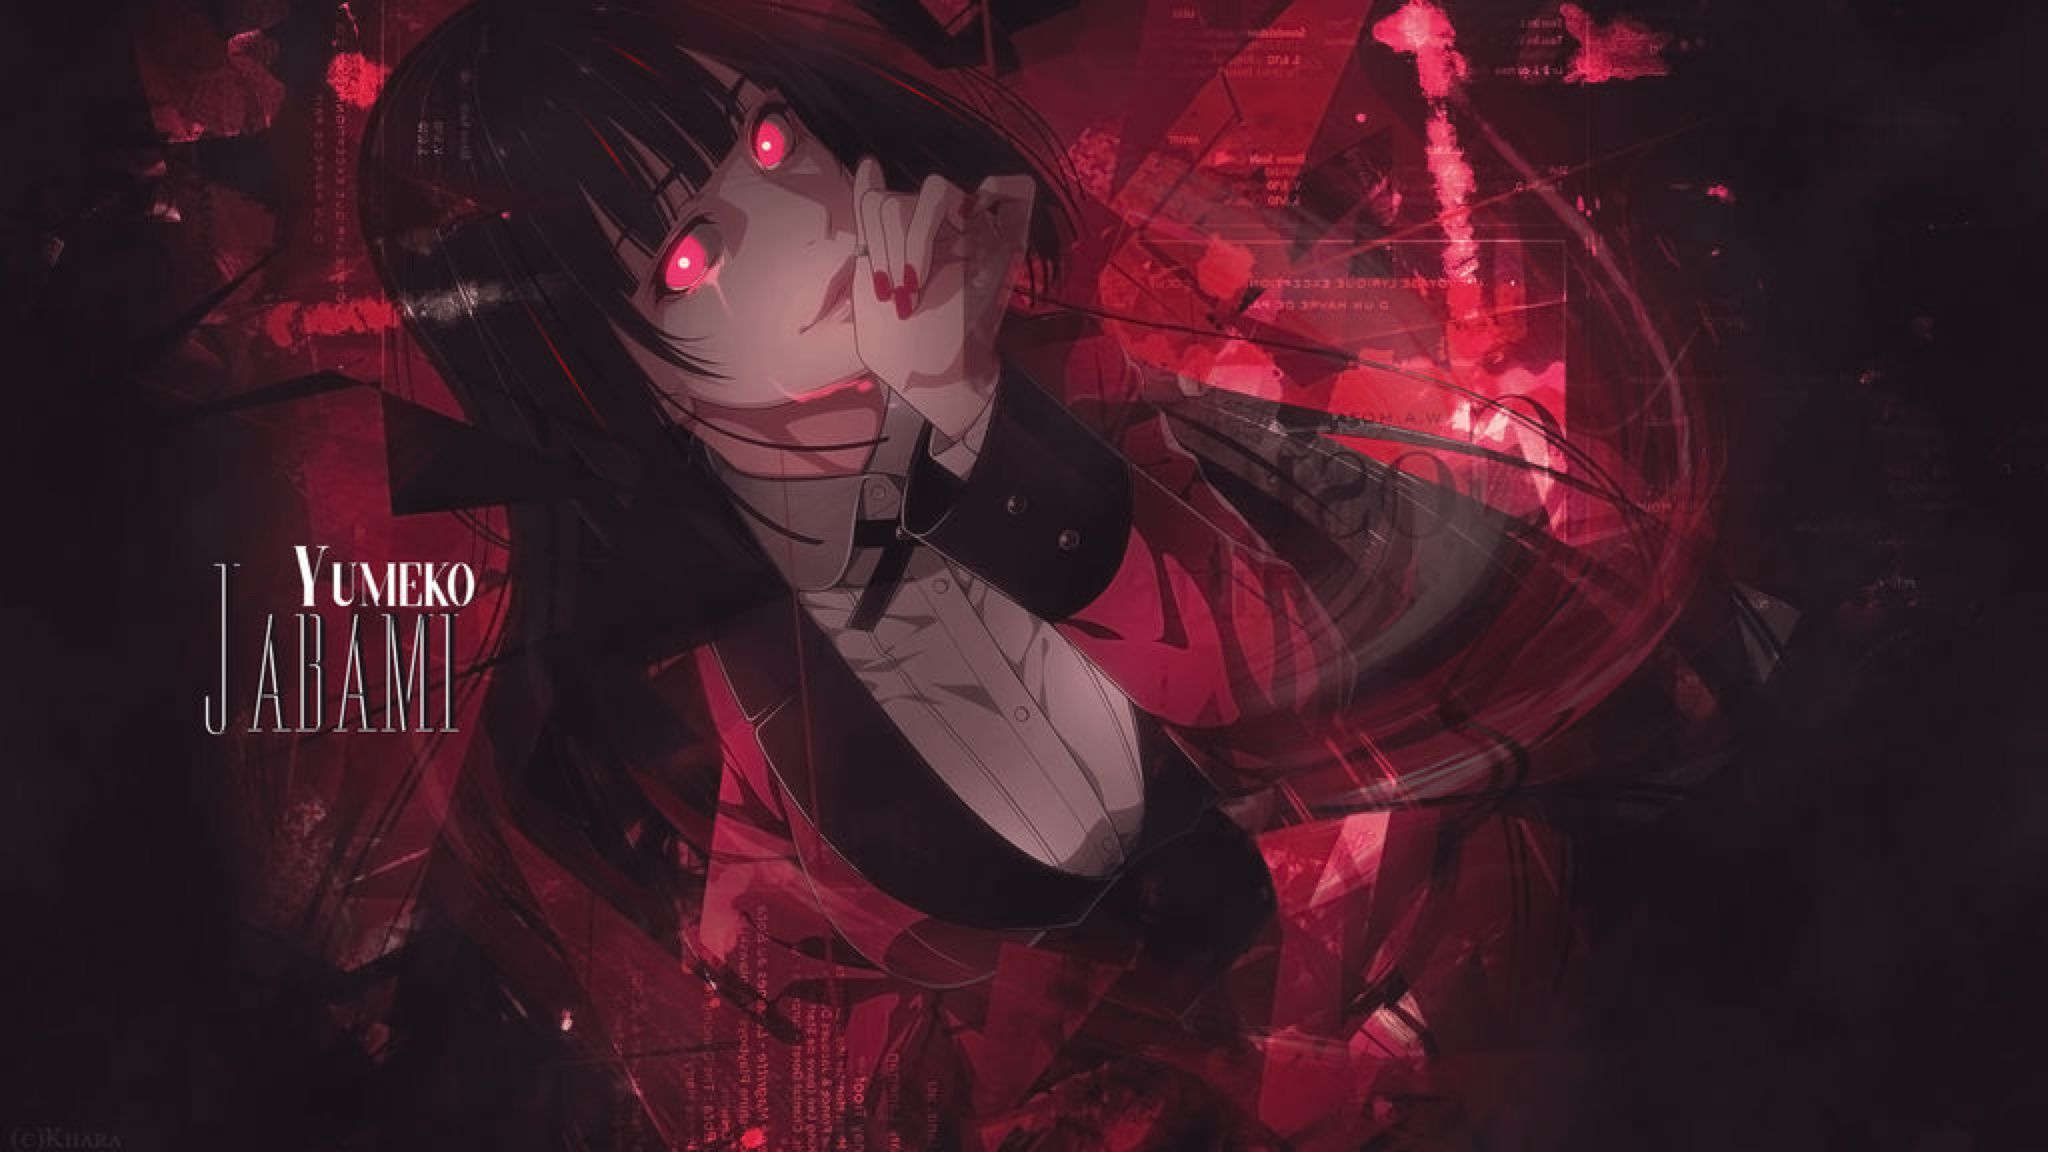 Wallpaper Kakegurui Yumeko Jabami By Kiiaralouto On Deviantart Anime Anime Wallpaper Aesthetic Anime